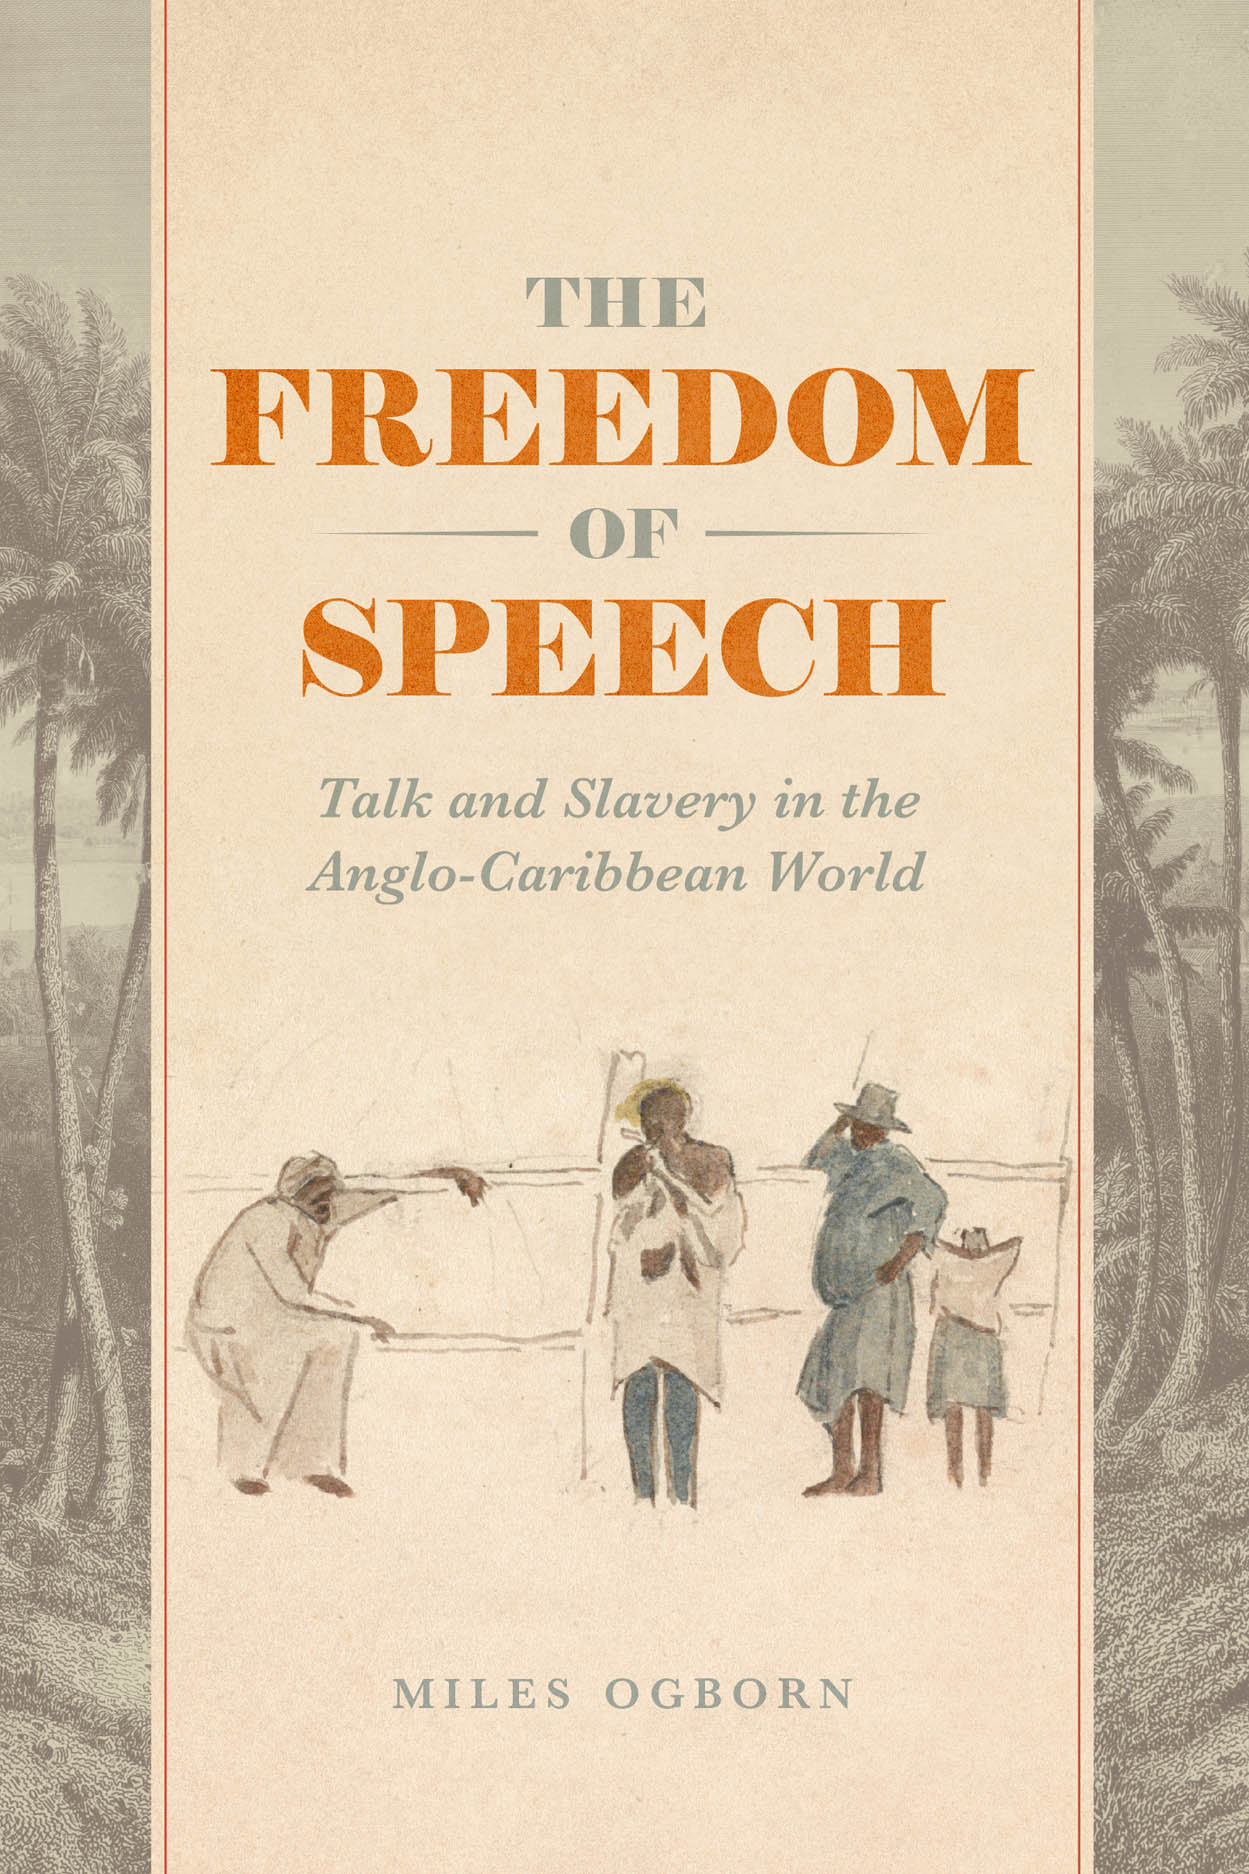 The Freedom of Speech: Talk and Slavery in the Anglo-Caribbean World